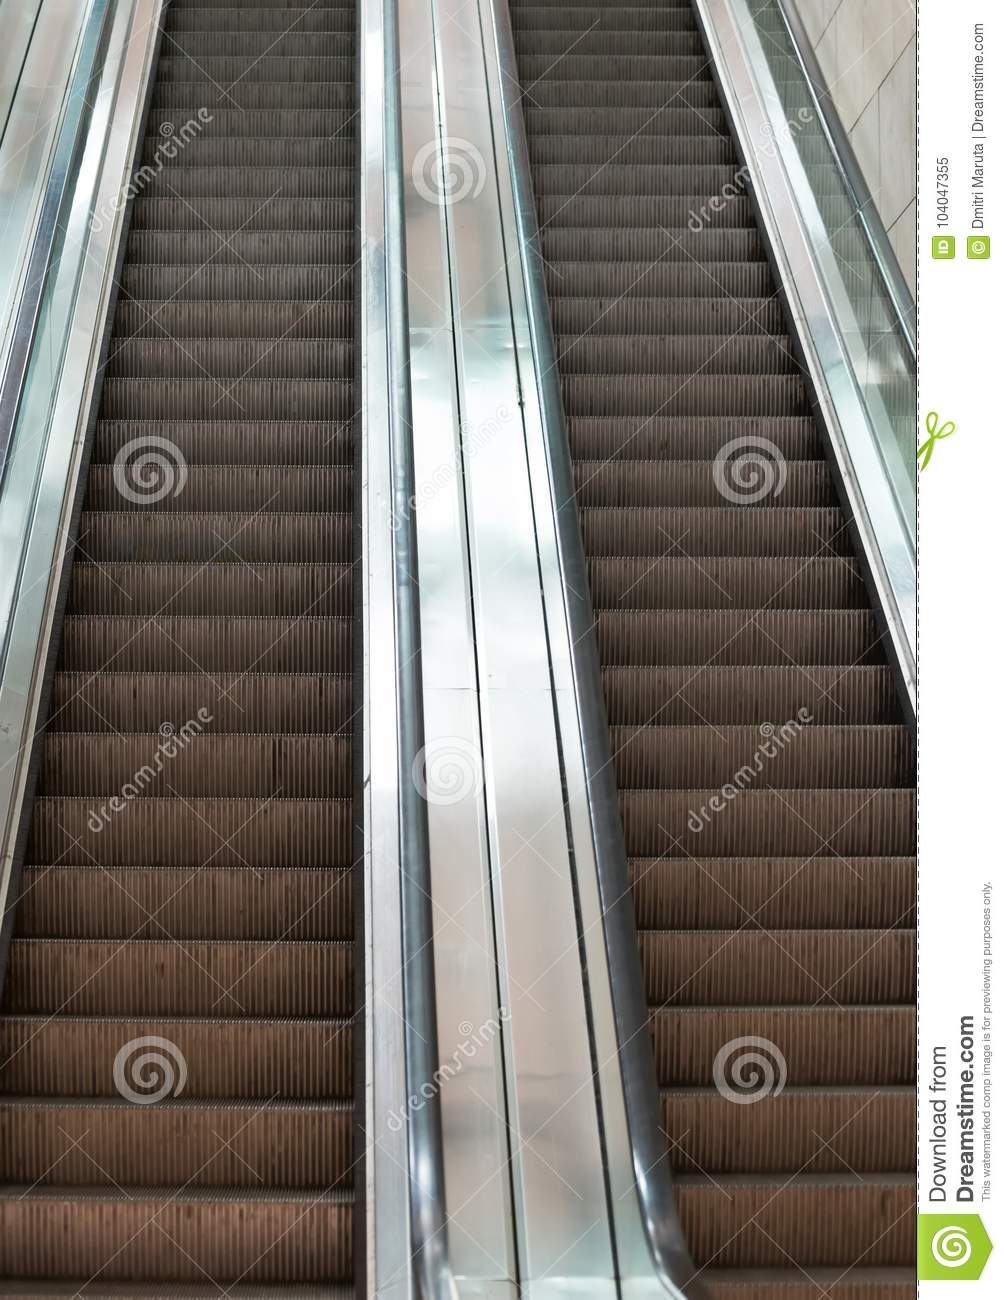 Download Moving Staircase. Stock Image. Image Of Perspective   104047355